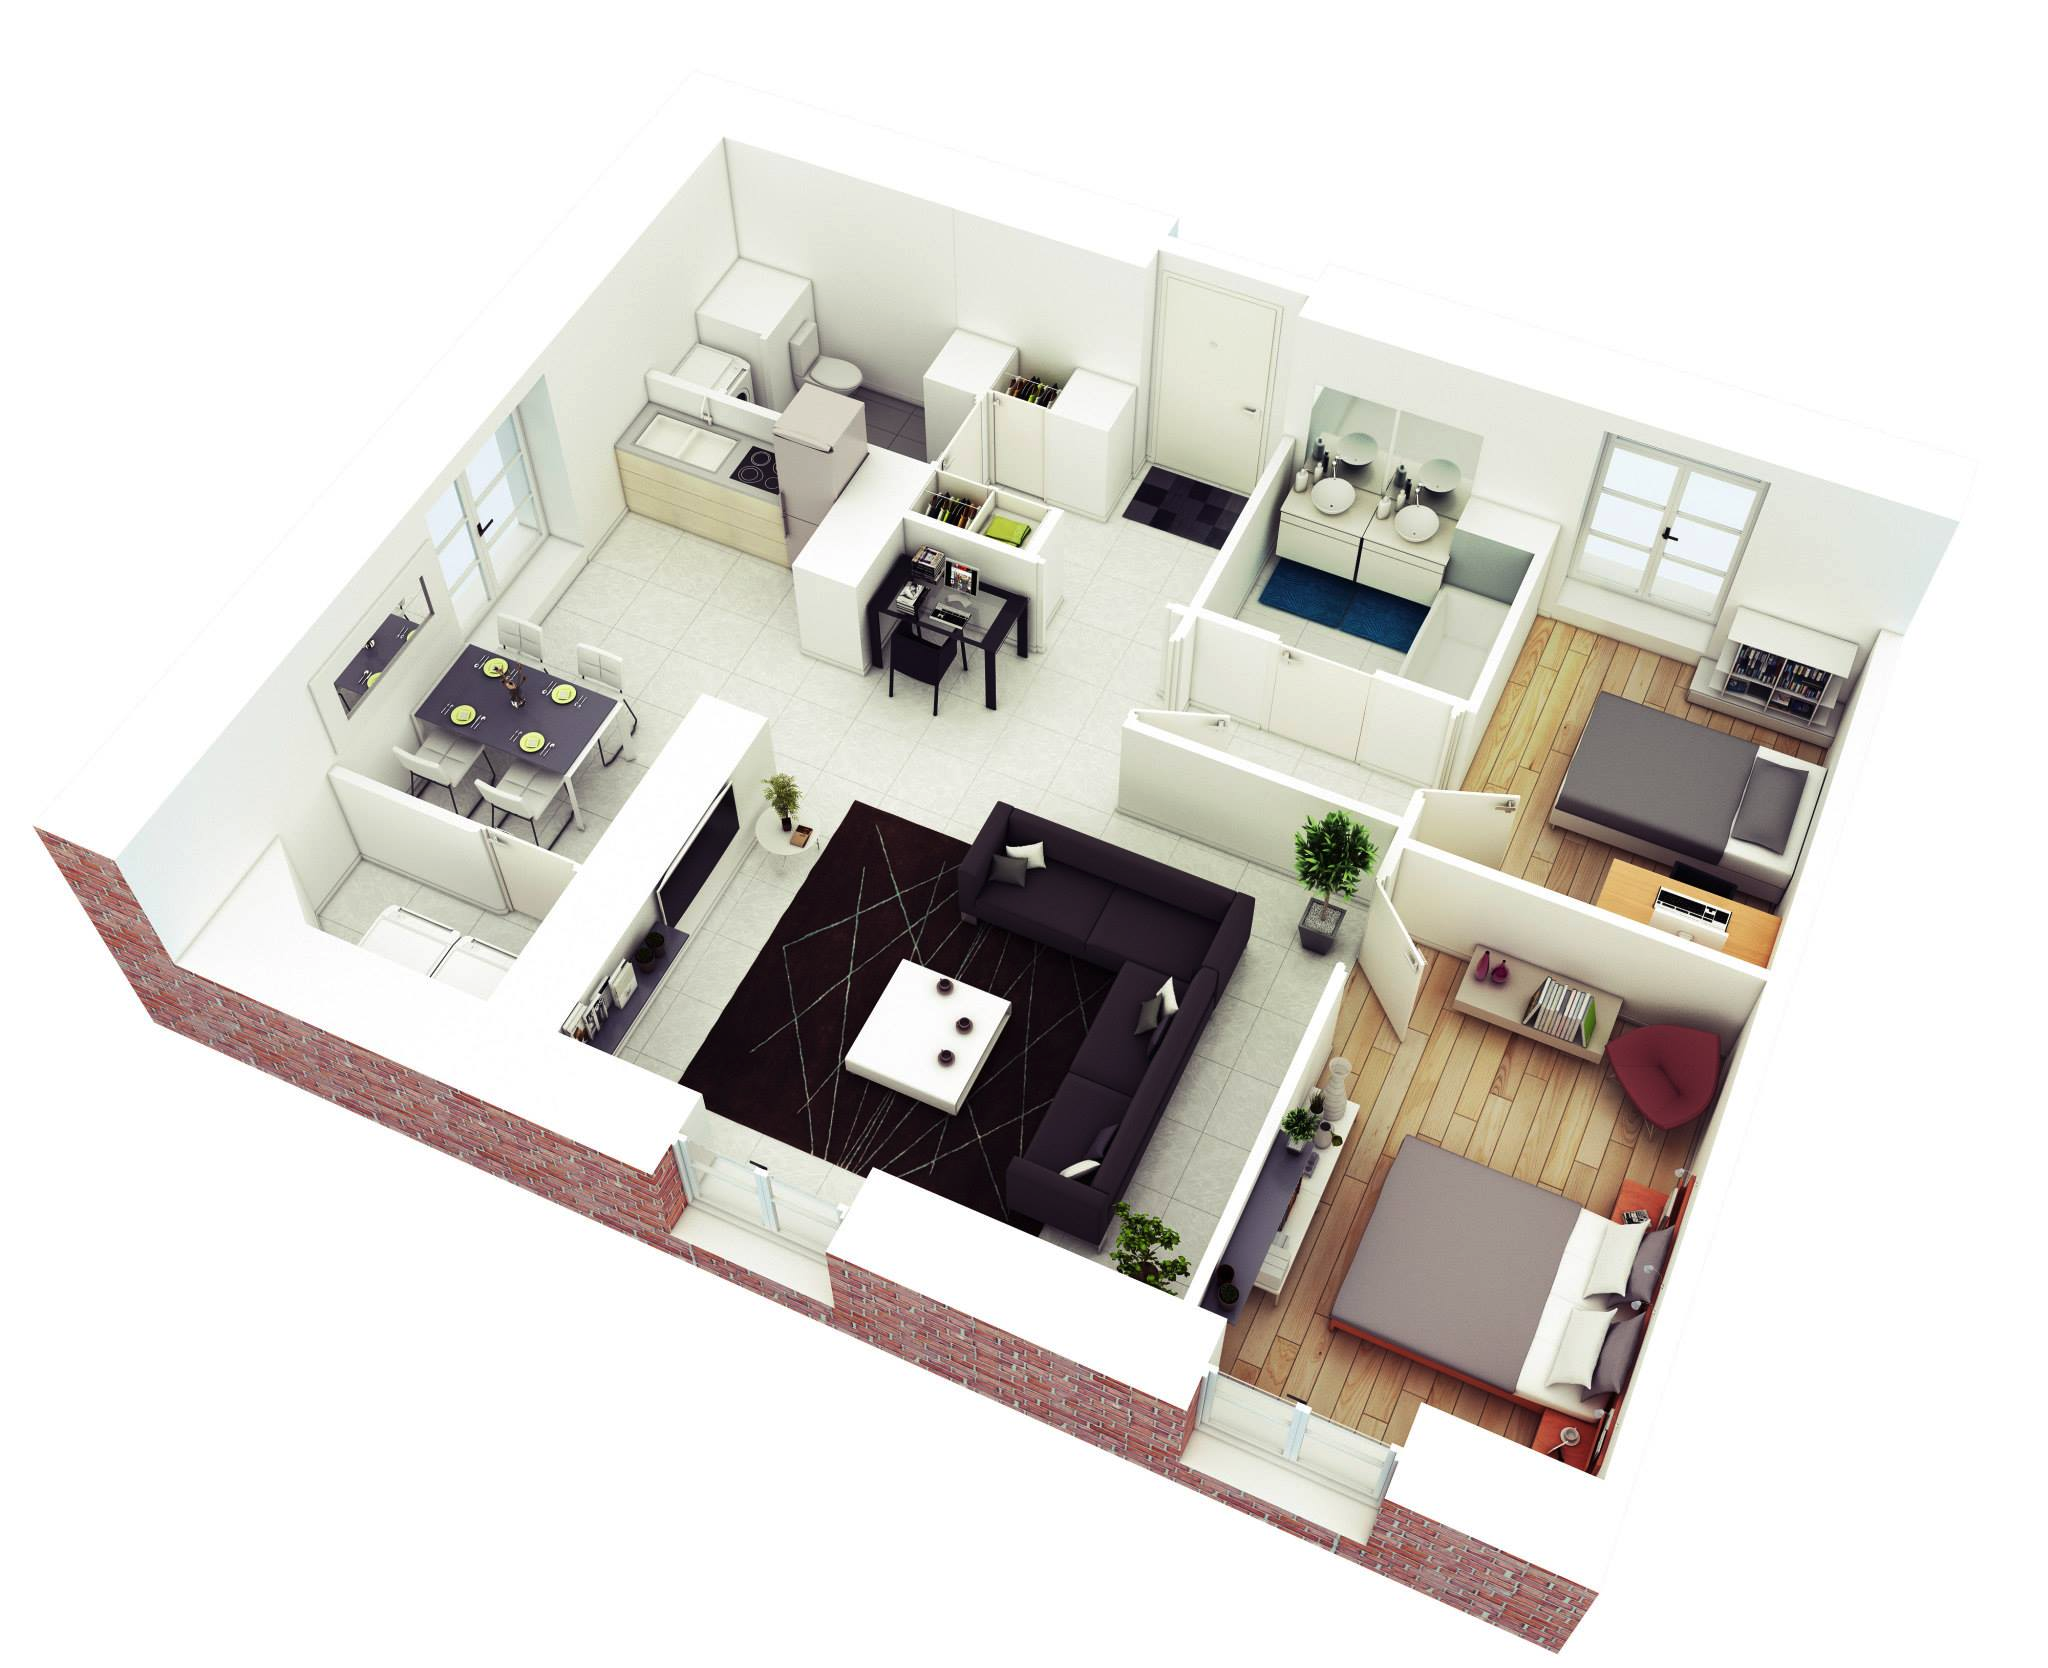 25 more 2 bedroom 3d floor plans for 2 bedroom house plans 3d